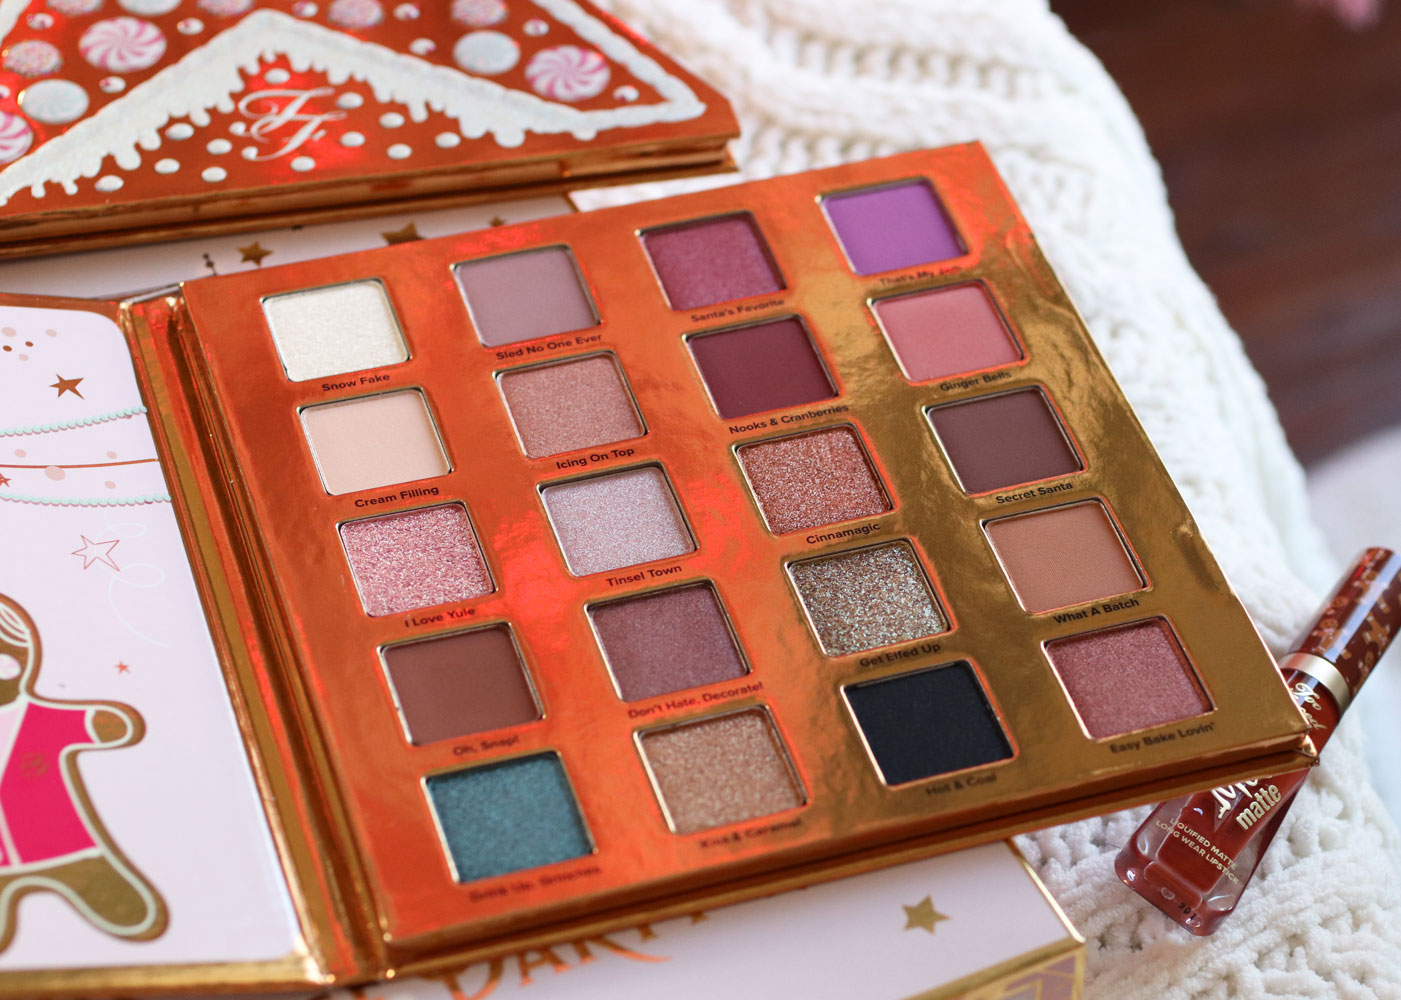 Too Faced Christmas Cookie House Party eyeshadow palette